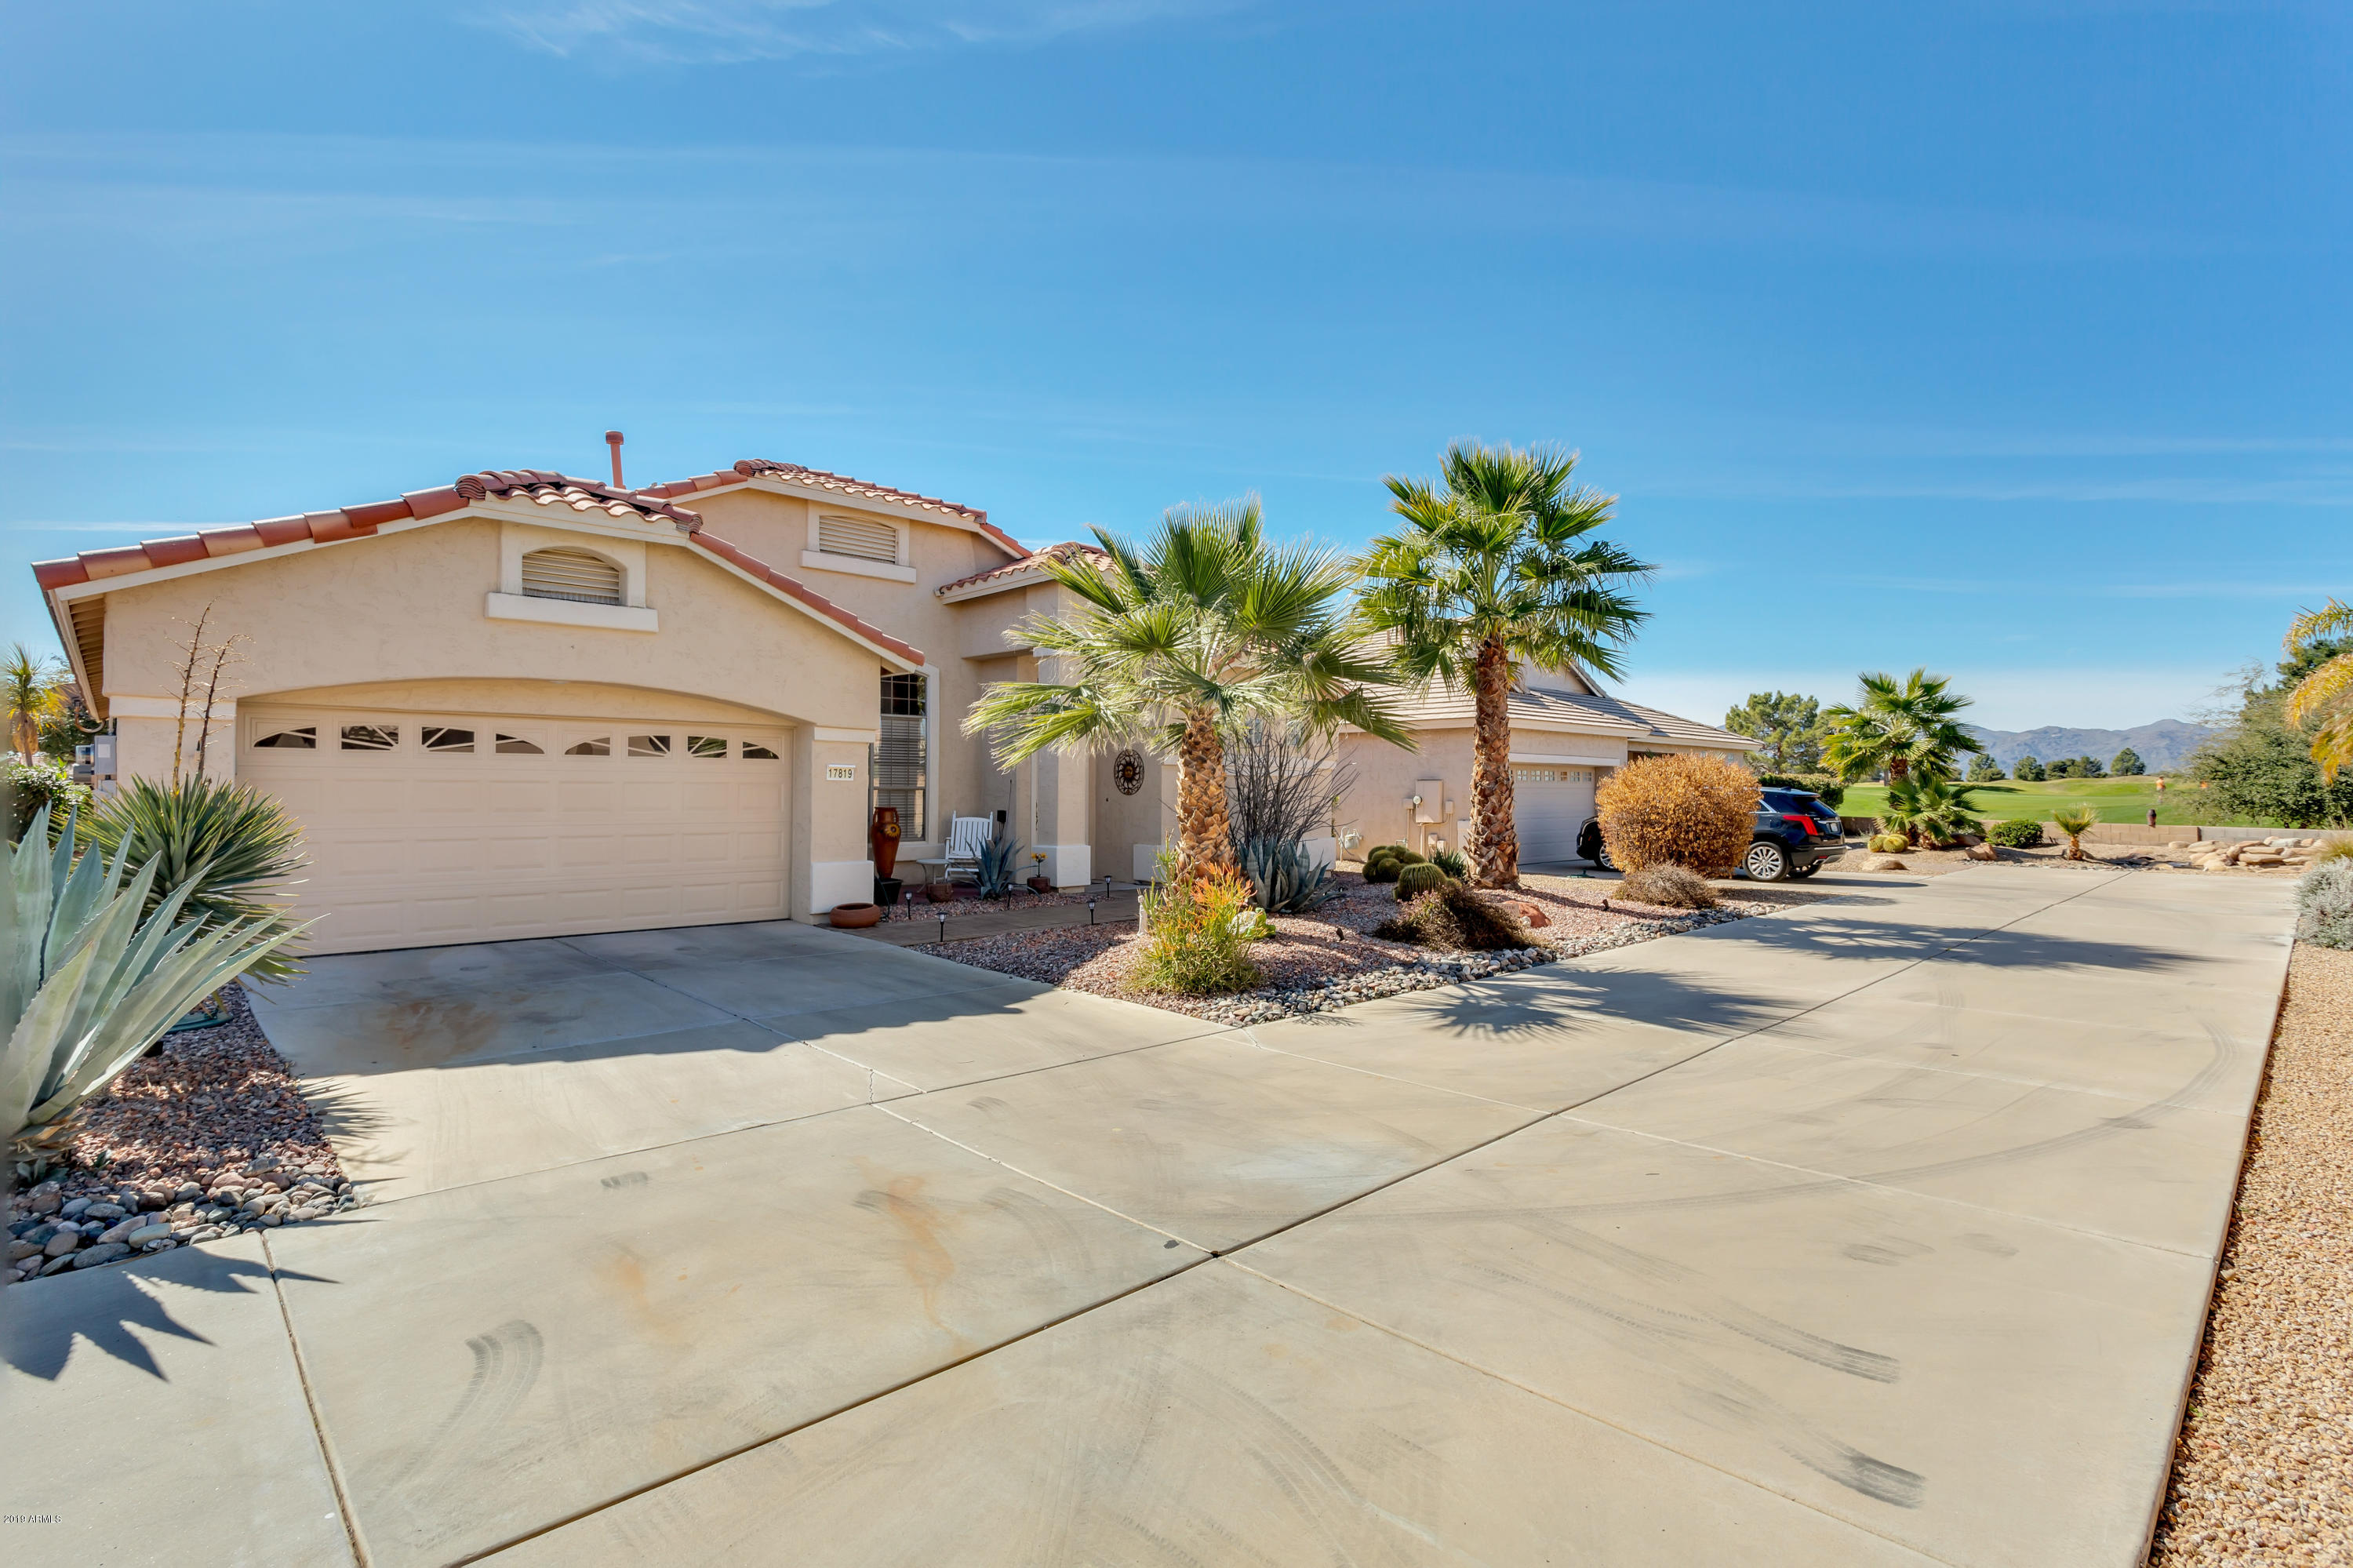 Photo of 17819 W HOLLY Drive, Surprise, AZ 85374